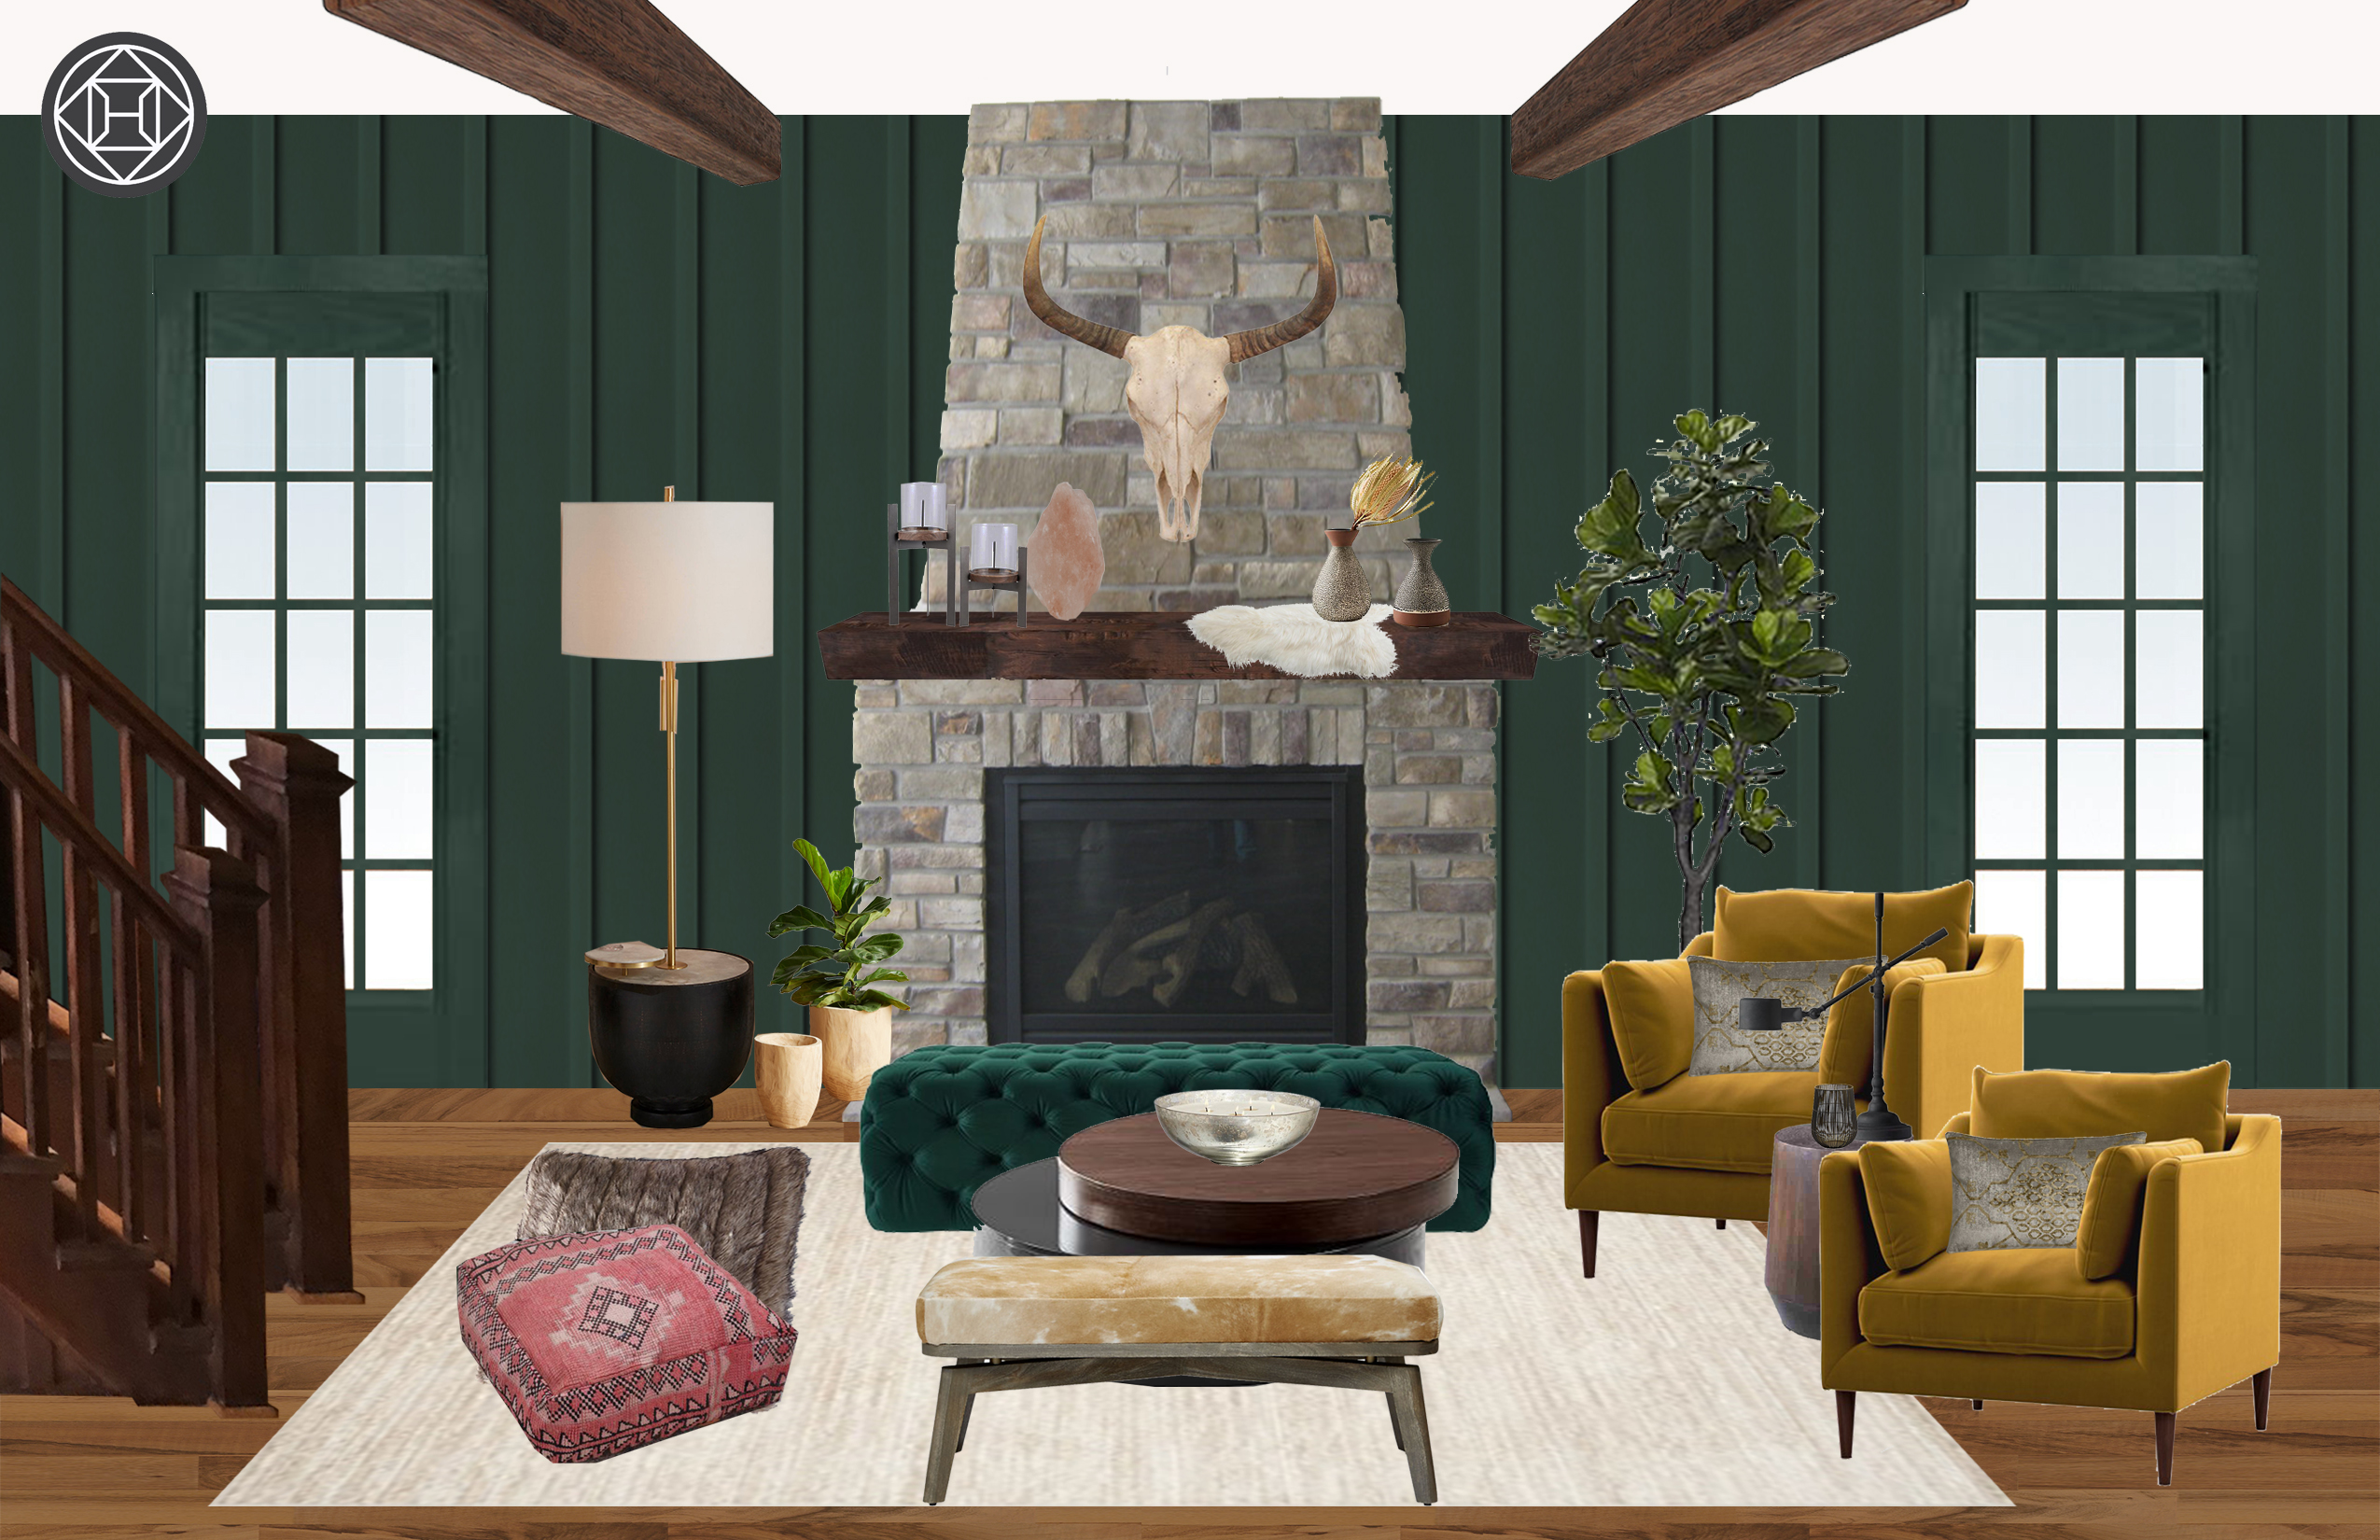 Eclectic Bohemian Global Design By Havenly Interior Designer Alexis